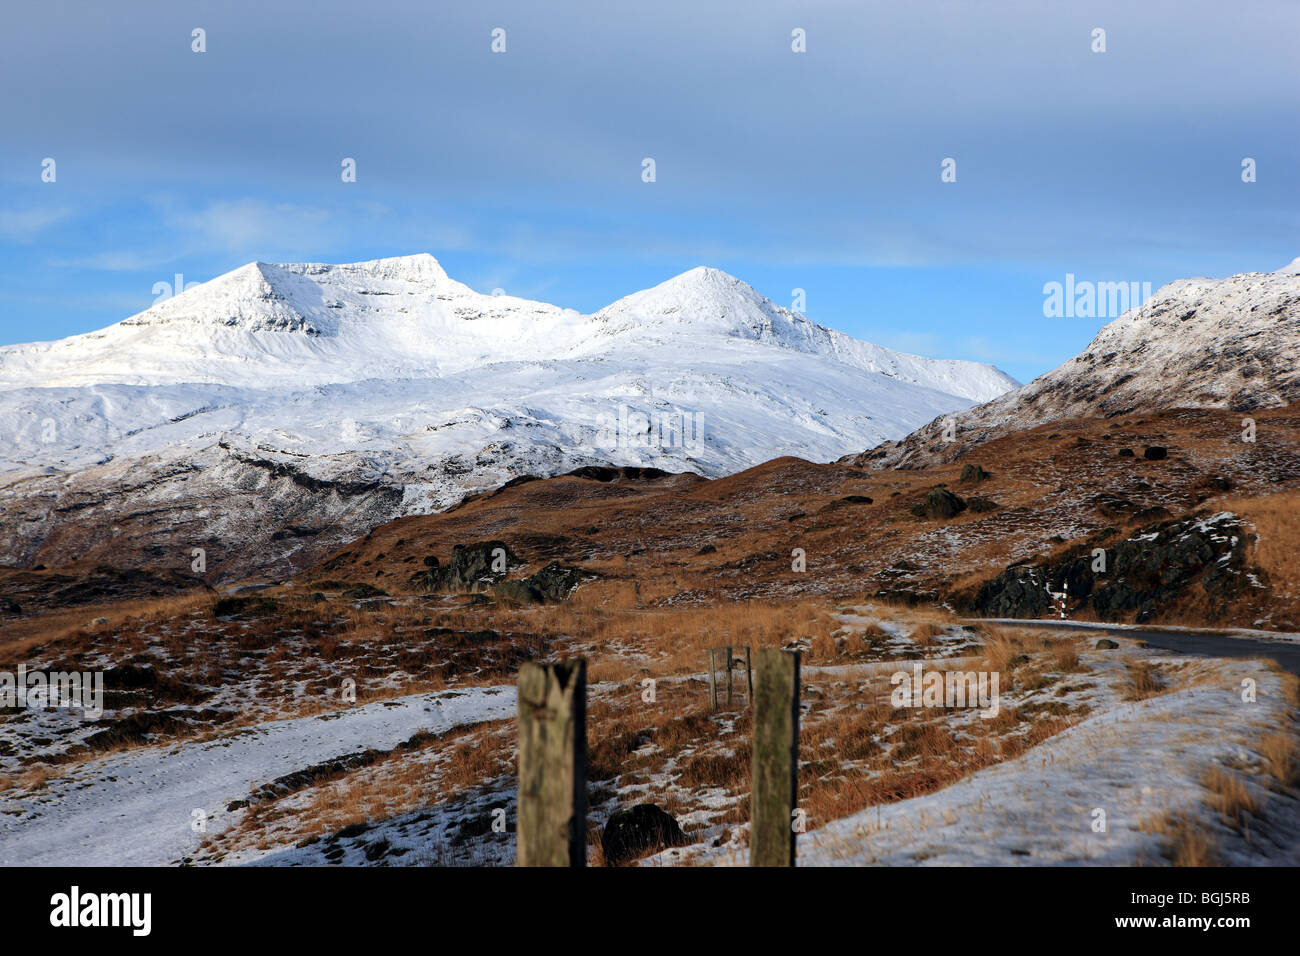 Ben More on the Isle of Mull covered in snow. - Stock Image